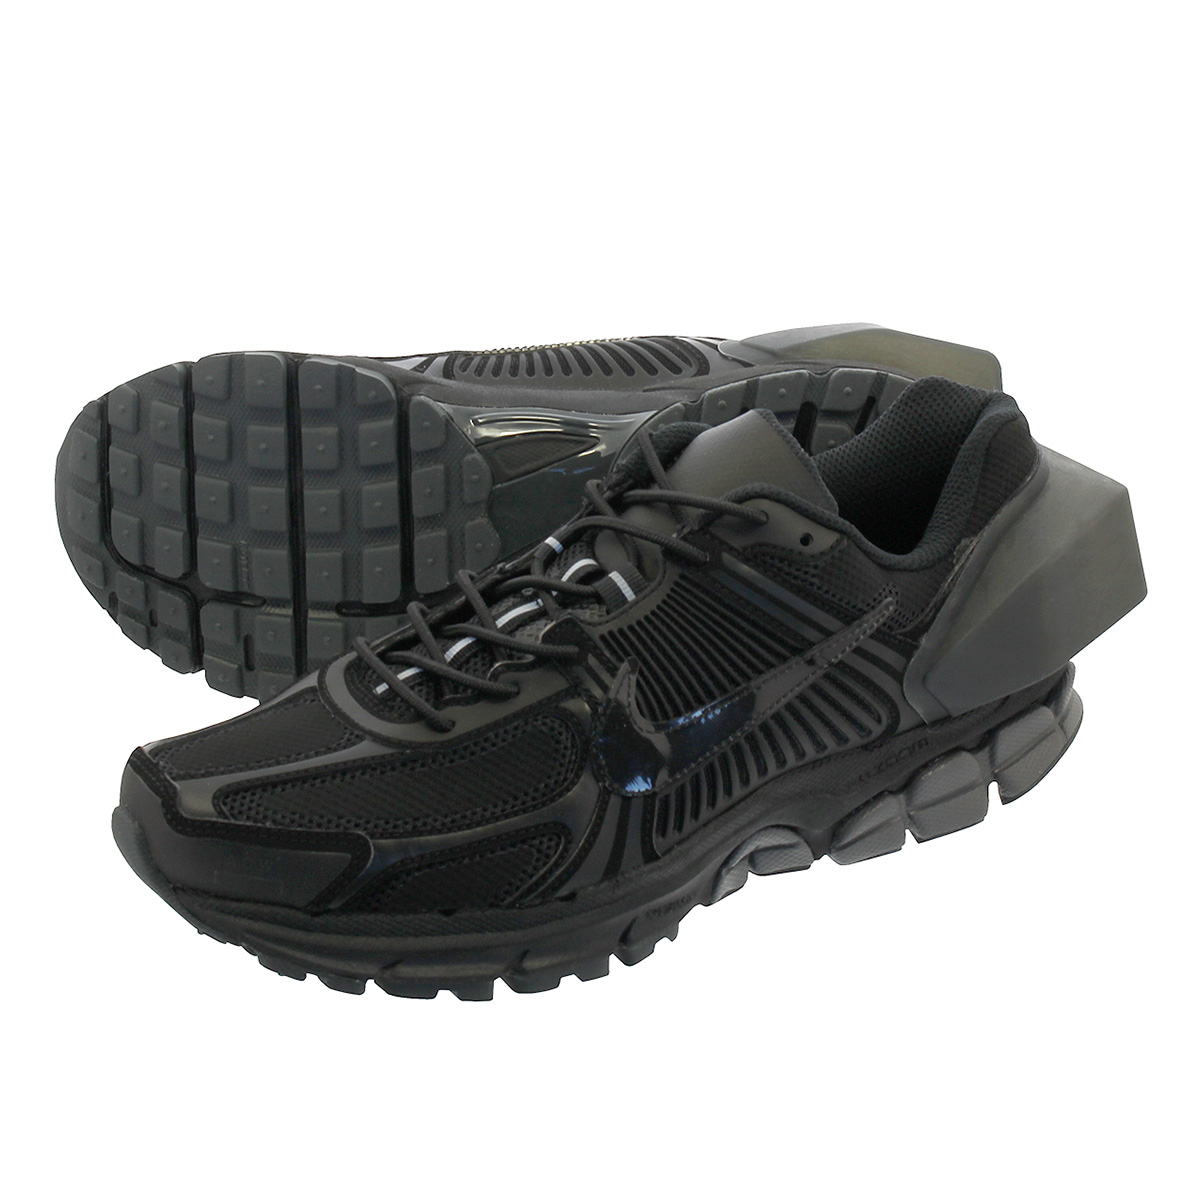 96fcbeda3281c NIKE x A-COLD-WALL ZOOM VOMERO 5 Nike x アコールドウォールズームボメロ +5 BLACK REFLECT  SILVER ANTHRACITE at3152-001